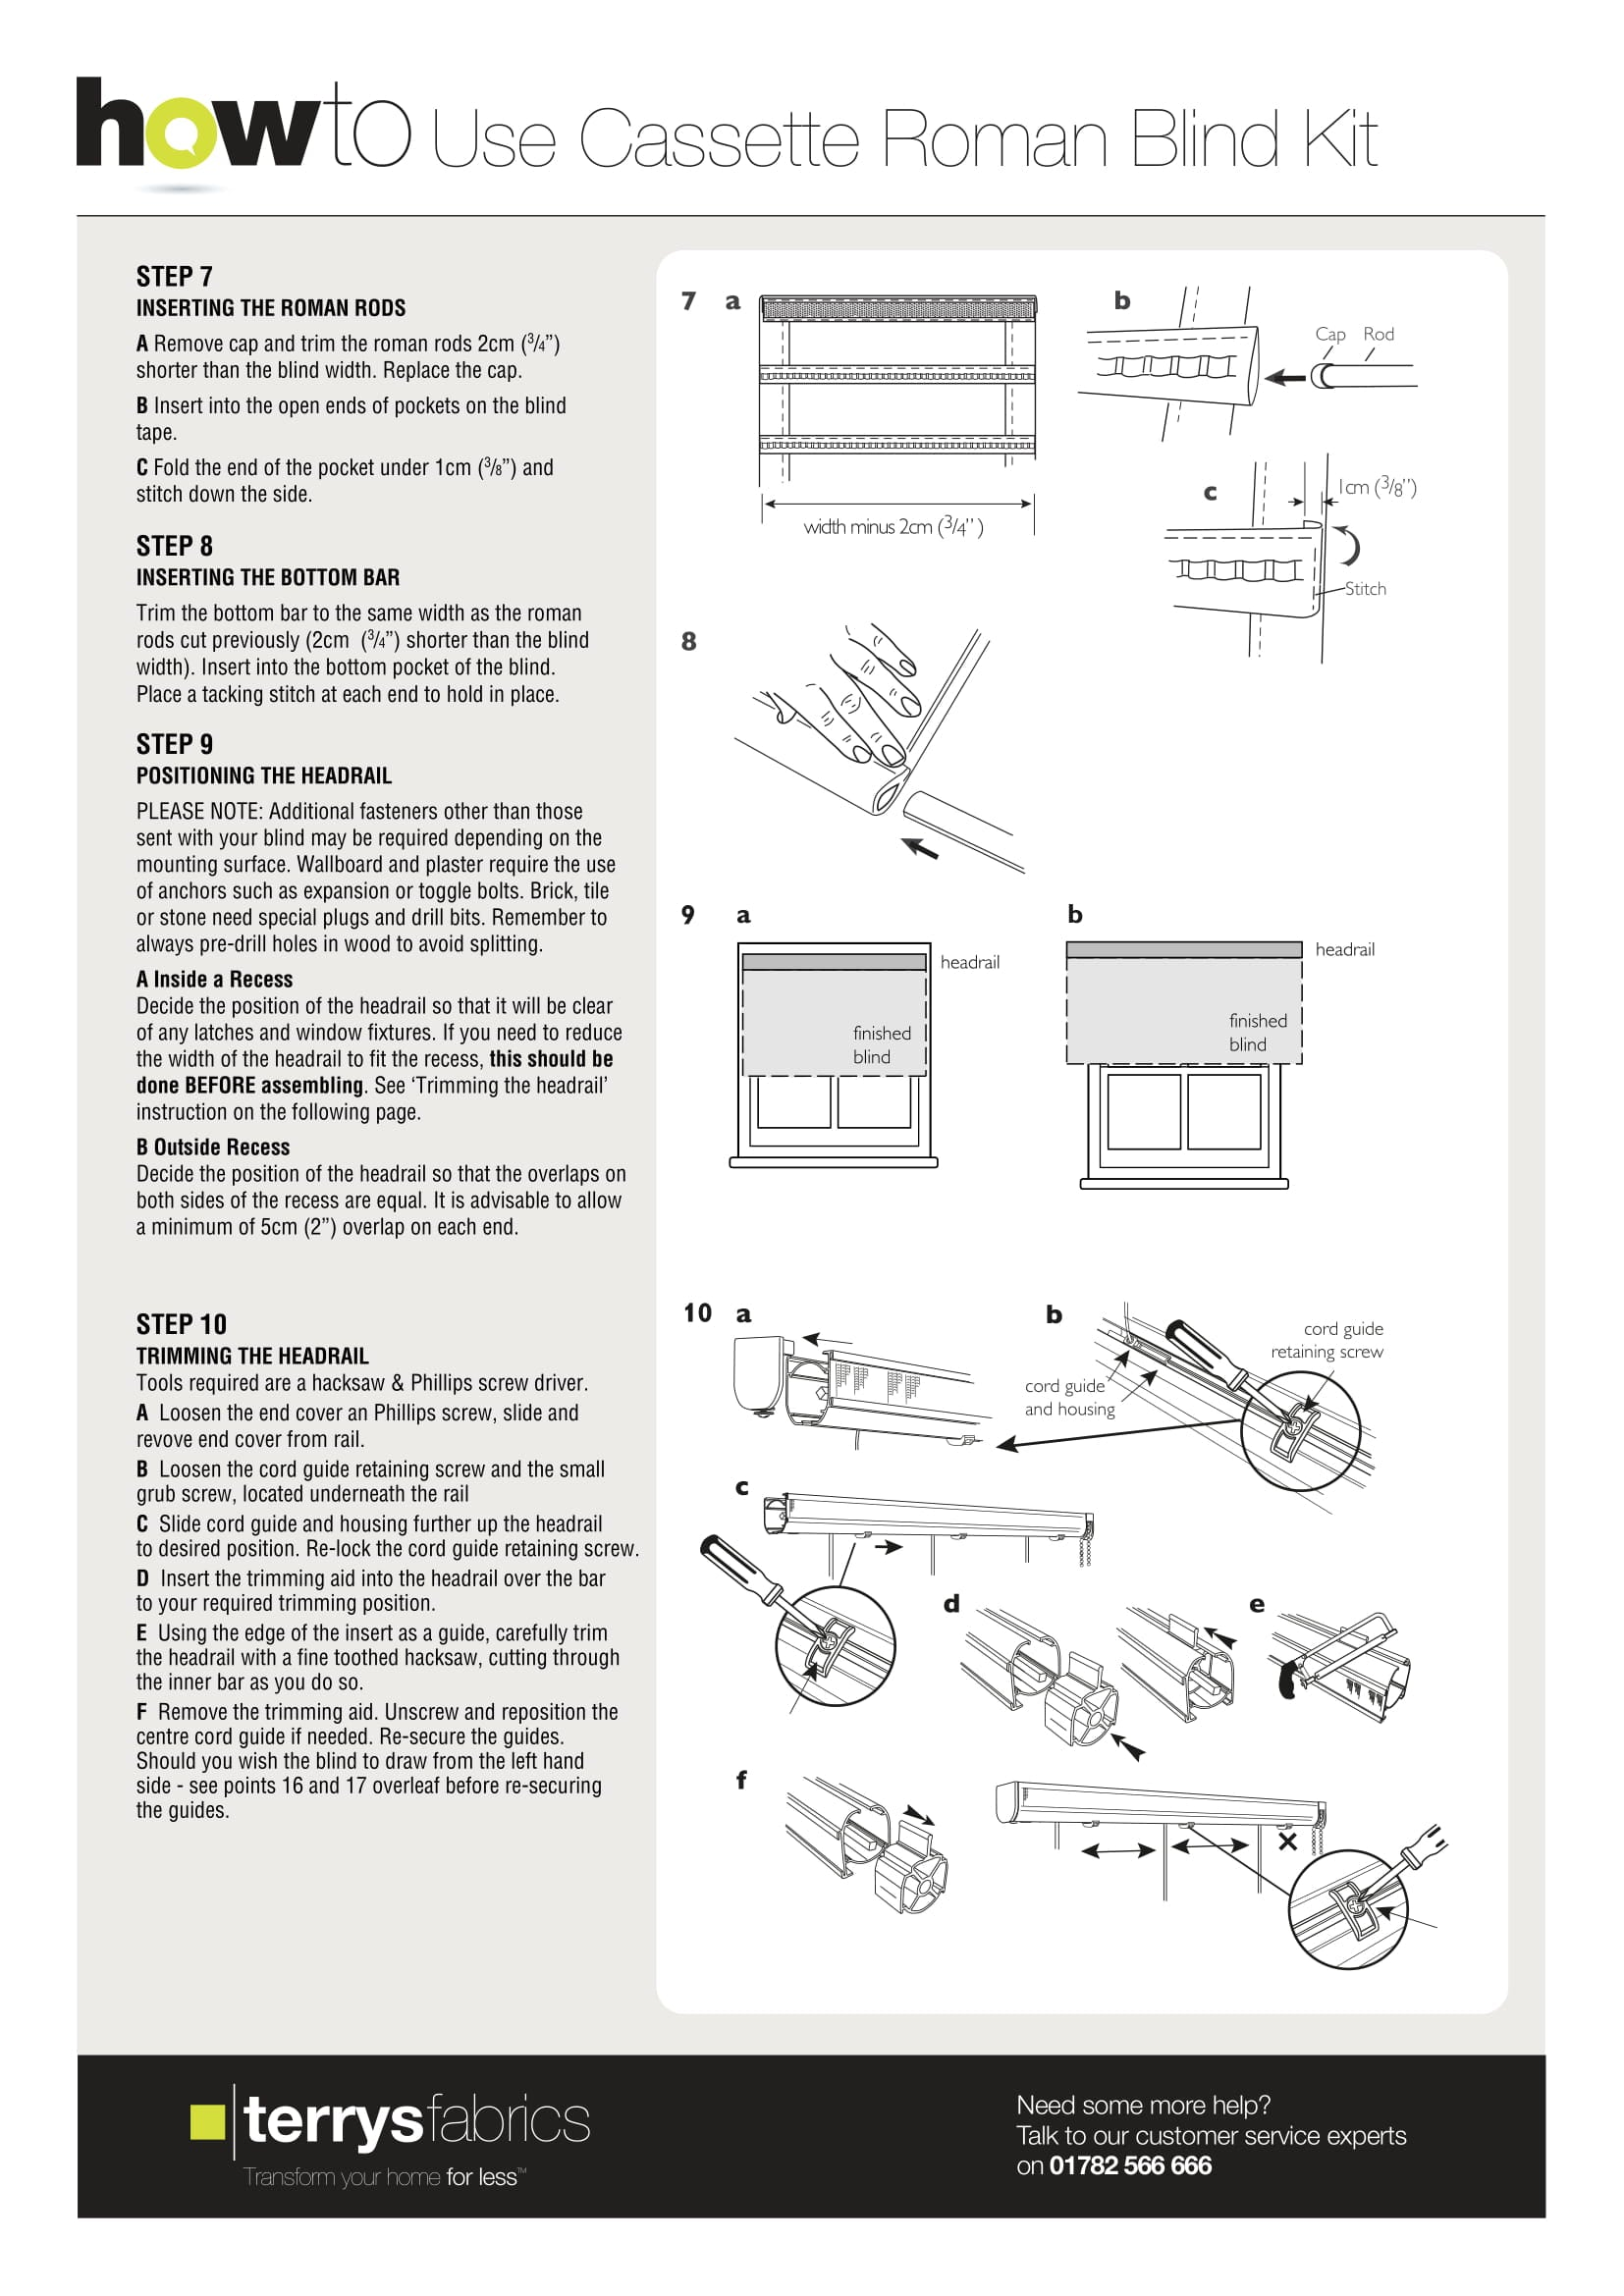 252 Best Images About Electrical Stuff On Pinterest Manual Guide